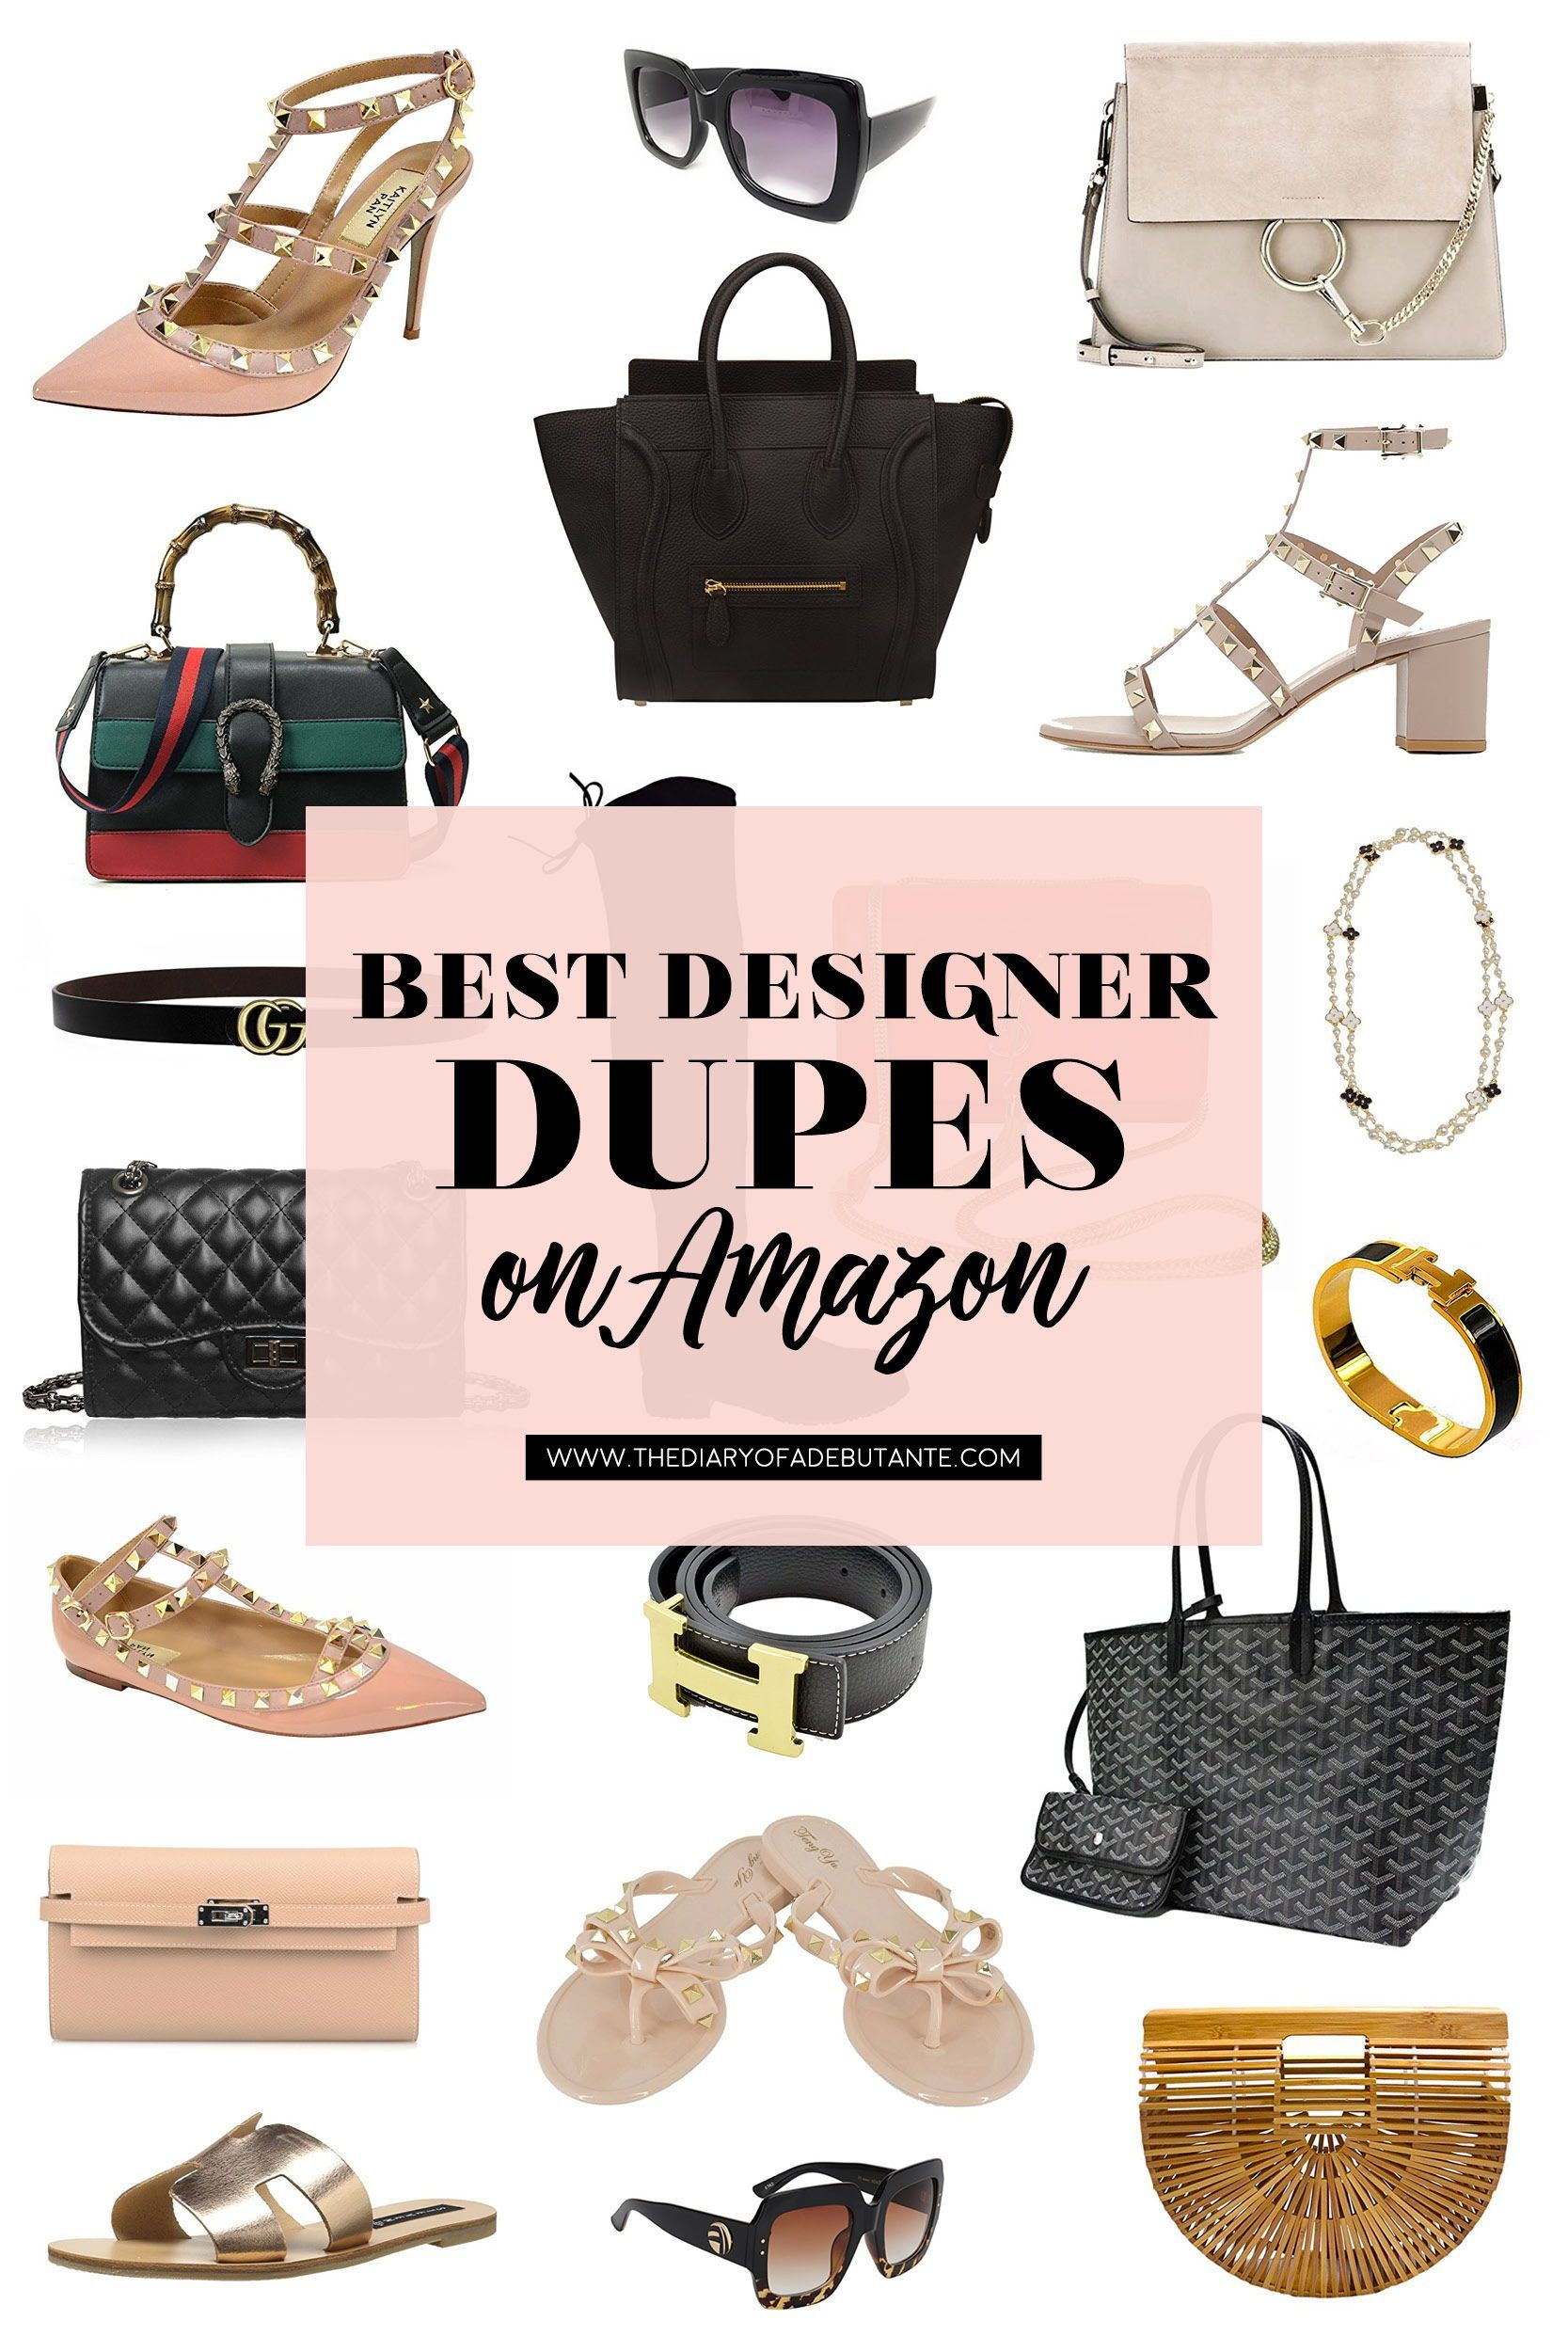 84eecb6616e3 All of the best designer dupes on Amazon rounded up in one place! If you